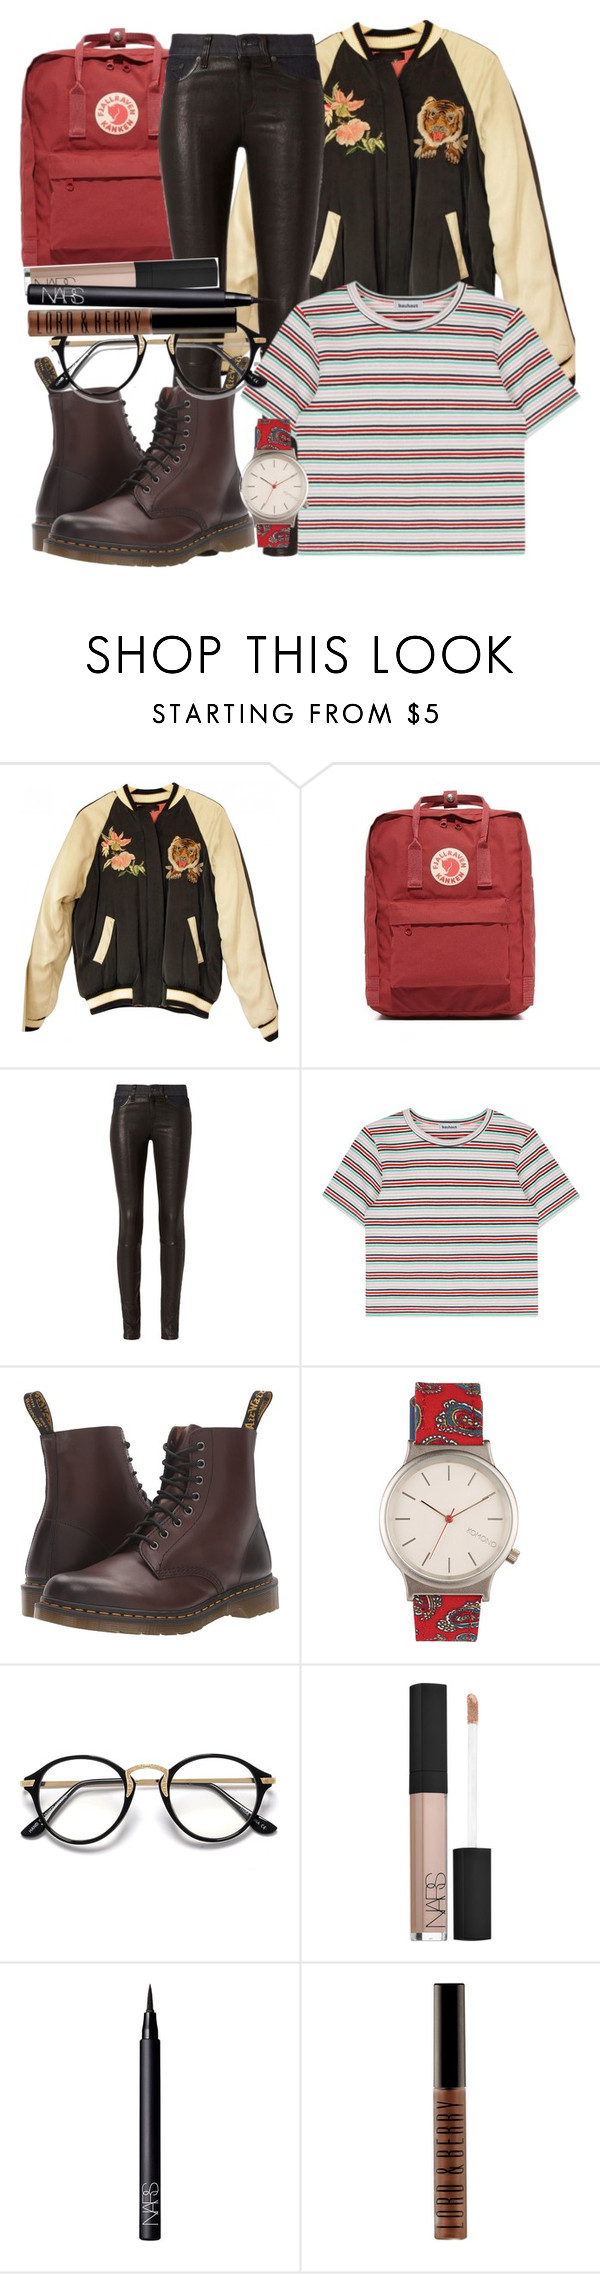 """n y c"" by ravenclaw-girl-1 ❤ liked on Polyvore featuring Isabel Marant, Fjällräven, rag & bone, Dr. Martens, Komono, NARS Cosmetics and Lord & Berry"